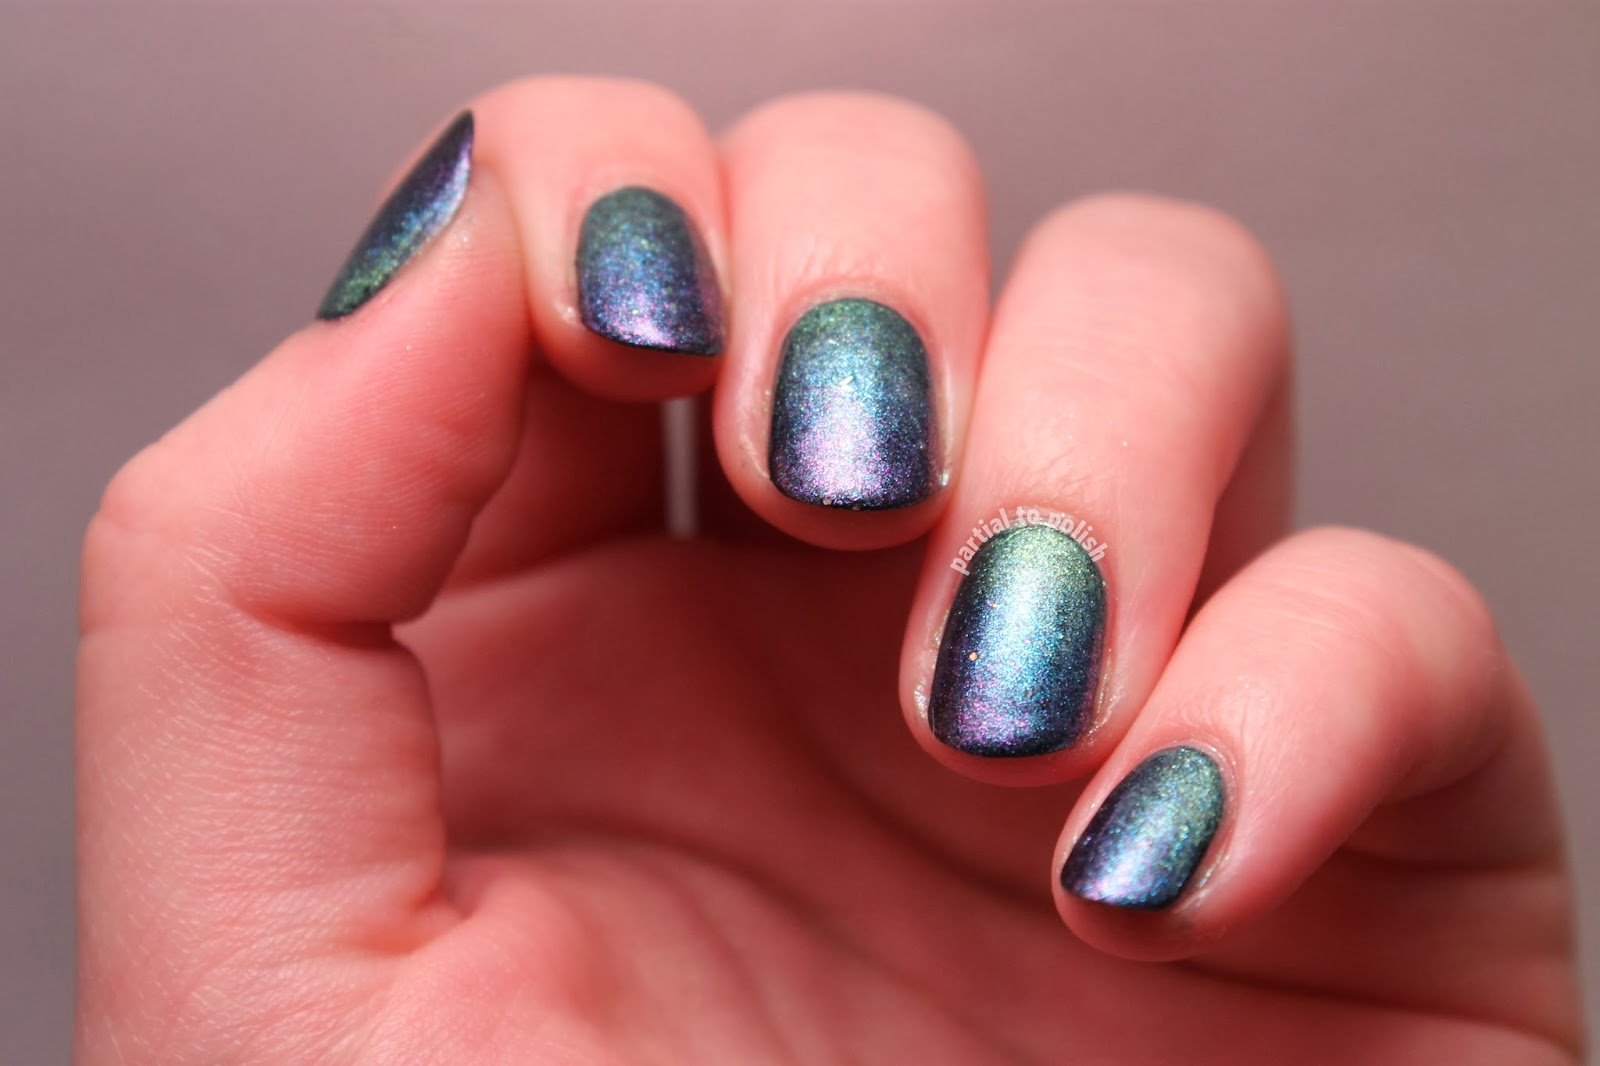 Black Sheep Lacquer Duochrome Gradient